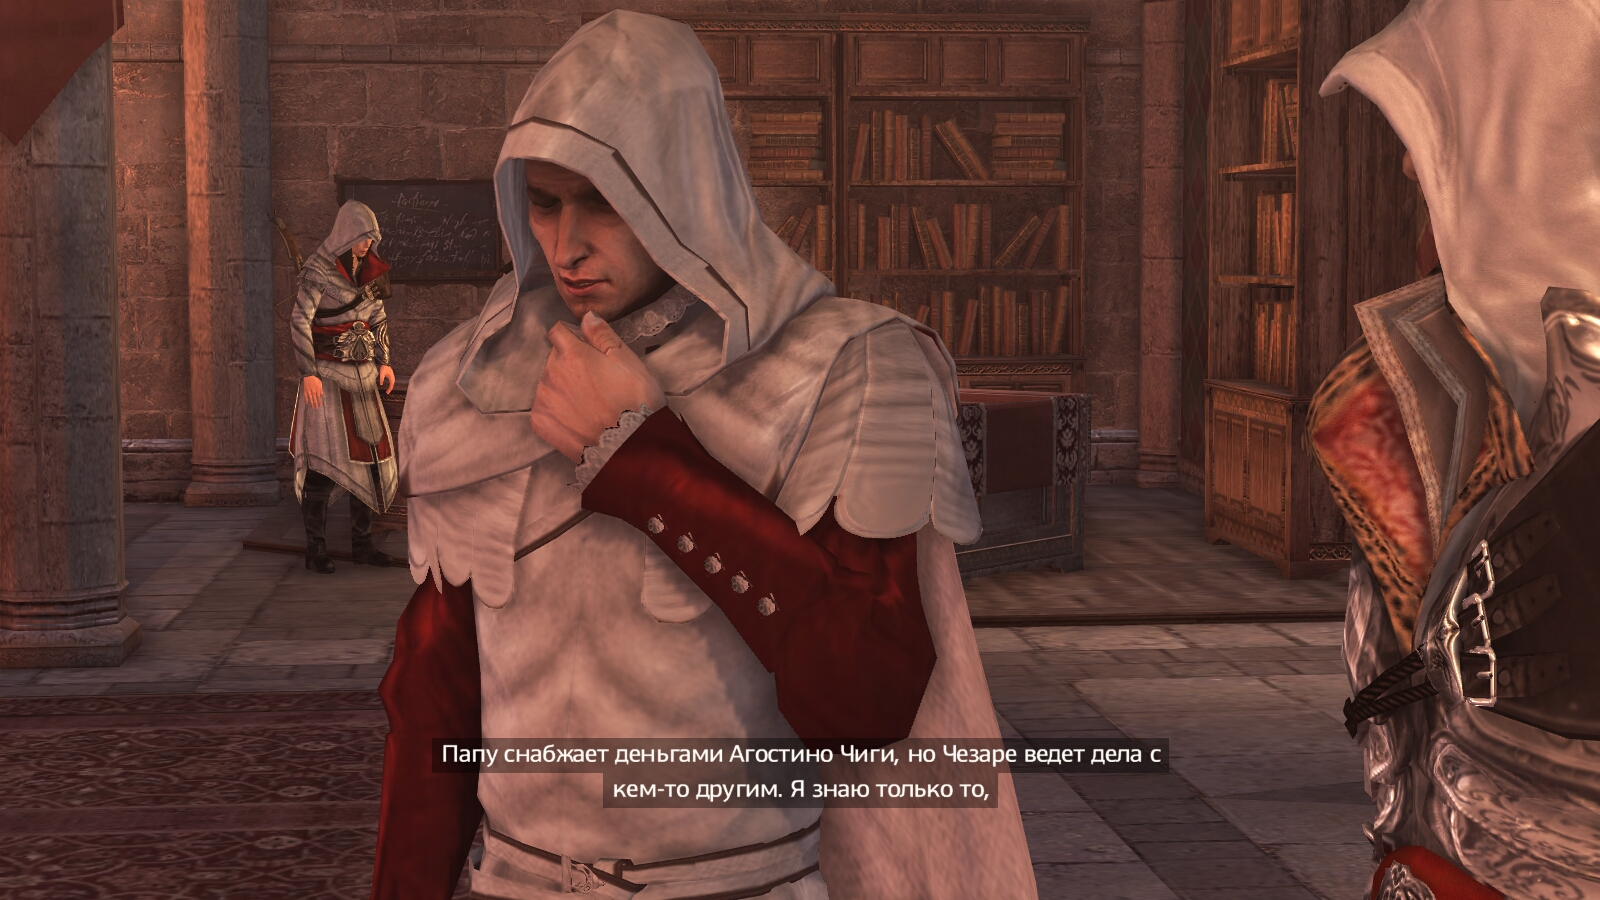 Assassin's creed brotherhood nude girl nude scenes